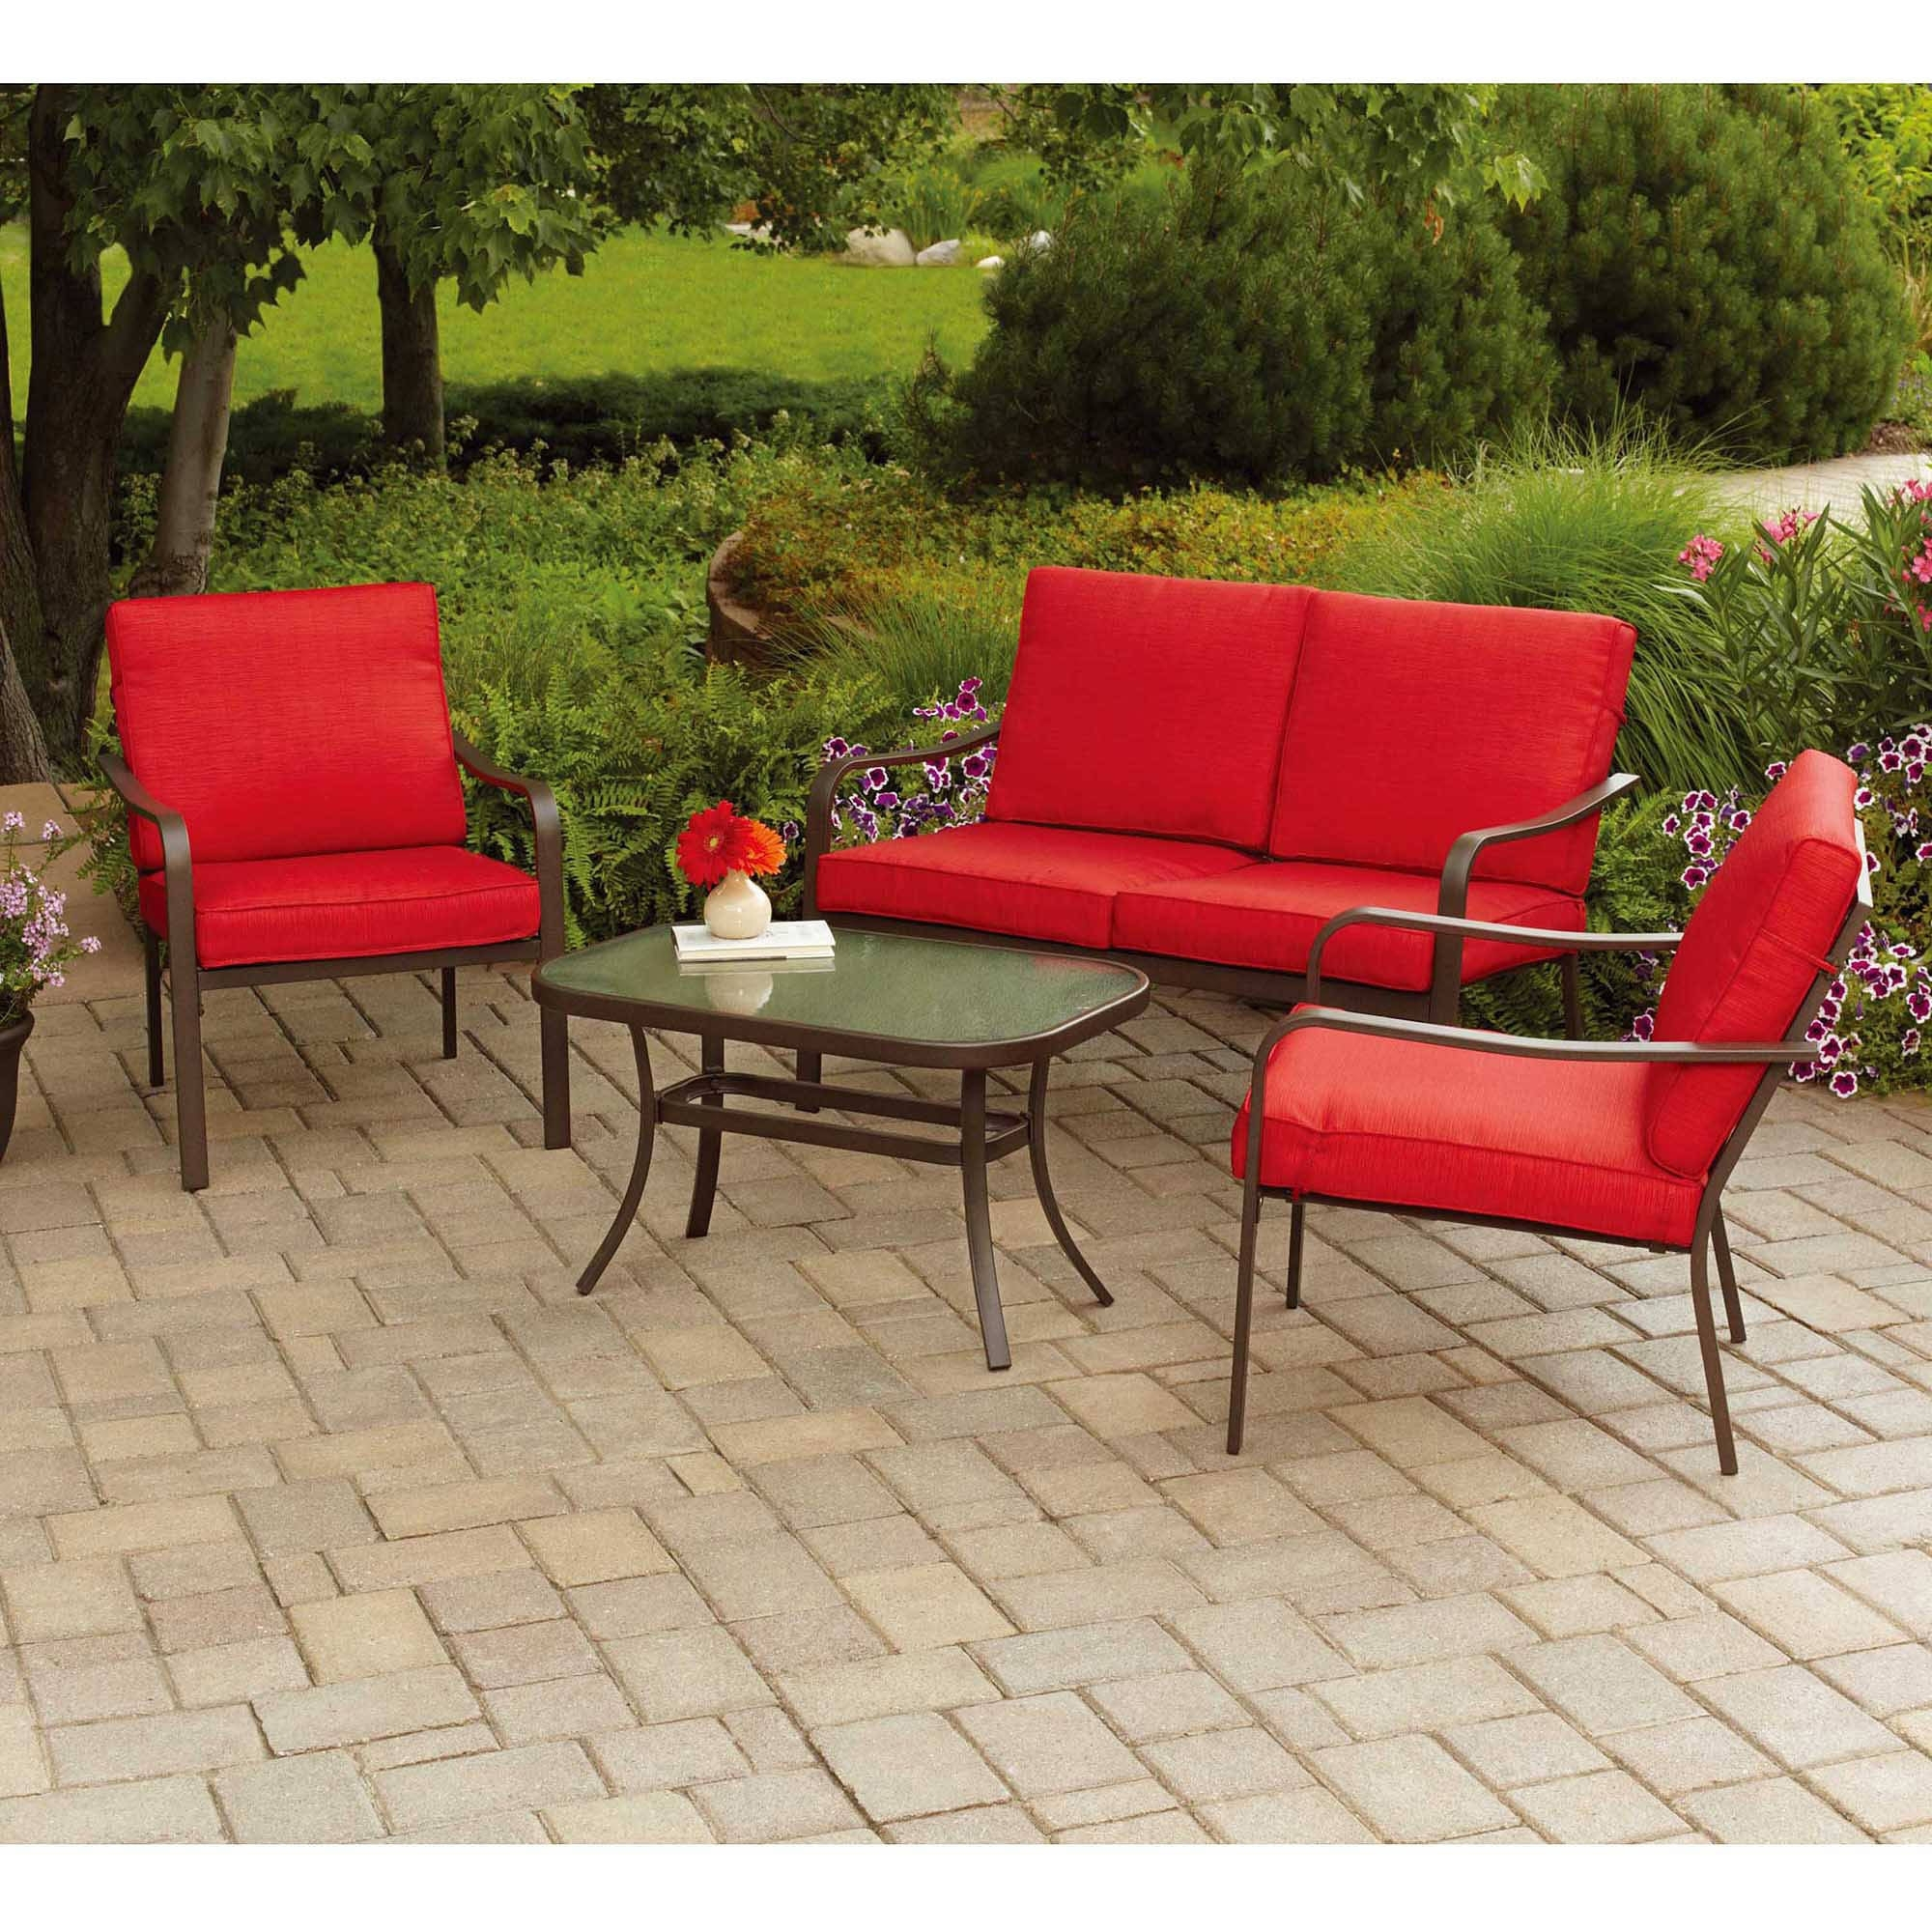 Patio Conversation Sets With Sunbrella Cushions For Popular Mainstays Stanton Cushioned 4 Piece Patio Conversation Set, Seats (View 20 of 20)